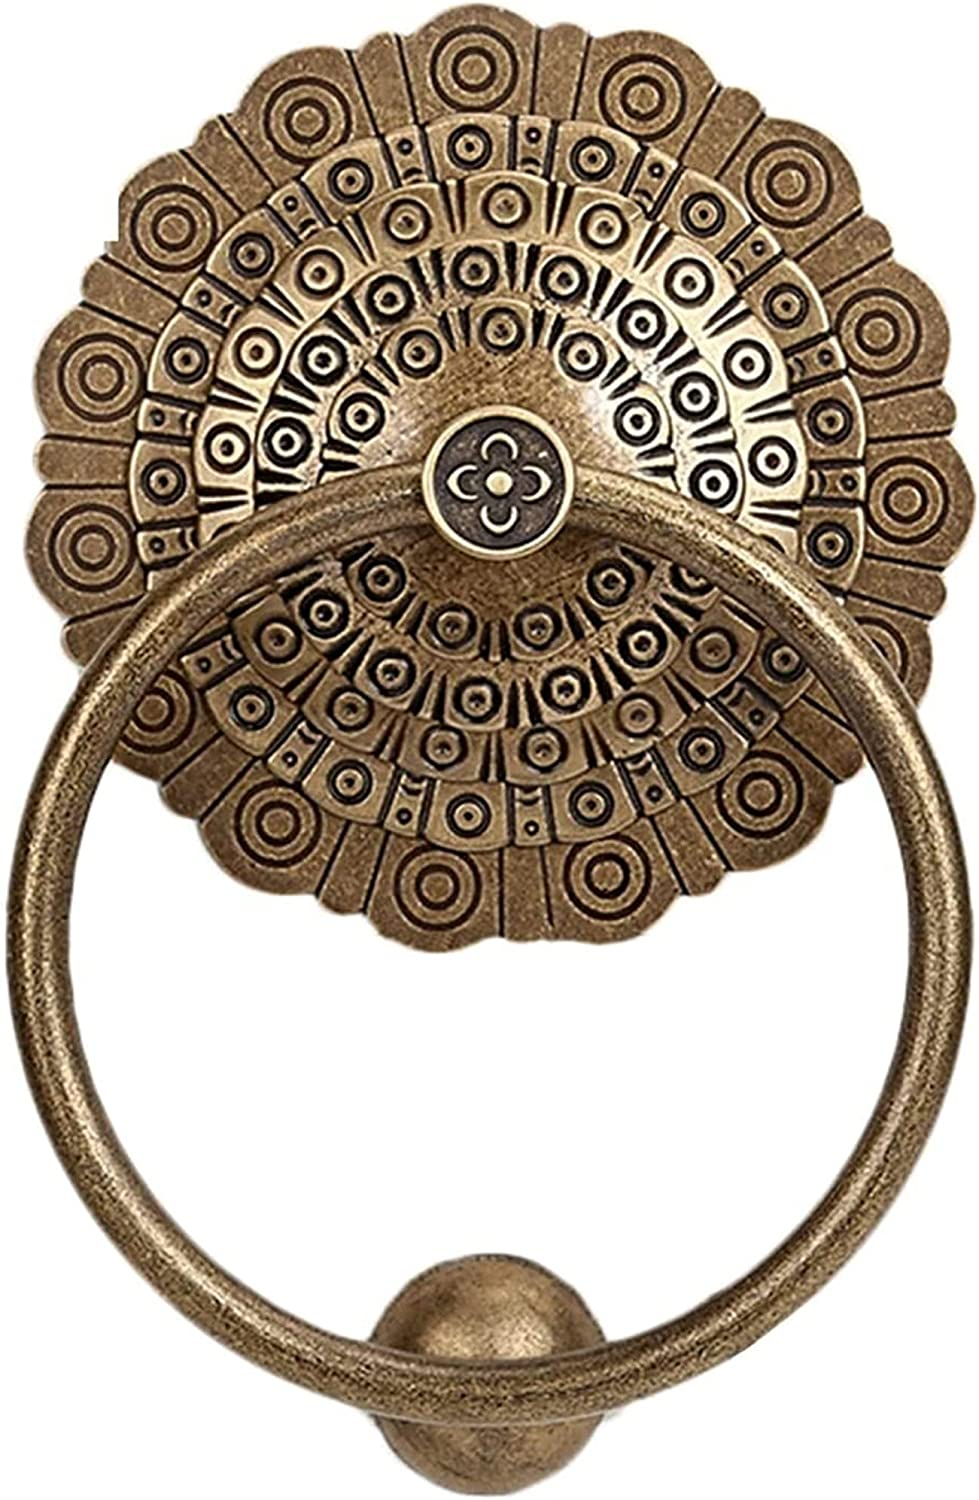 XJZM Antique Furniture Handle Wardrobe Pull Ring,Deluxe Wall Decor Brass Door Knockers Sign, for Factory, Hotel, Office Cupboard, Garden, Brown Gate Knocker Artisan Made Home Decor Acces